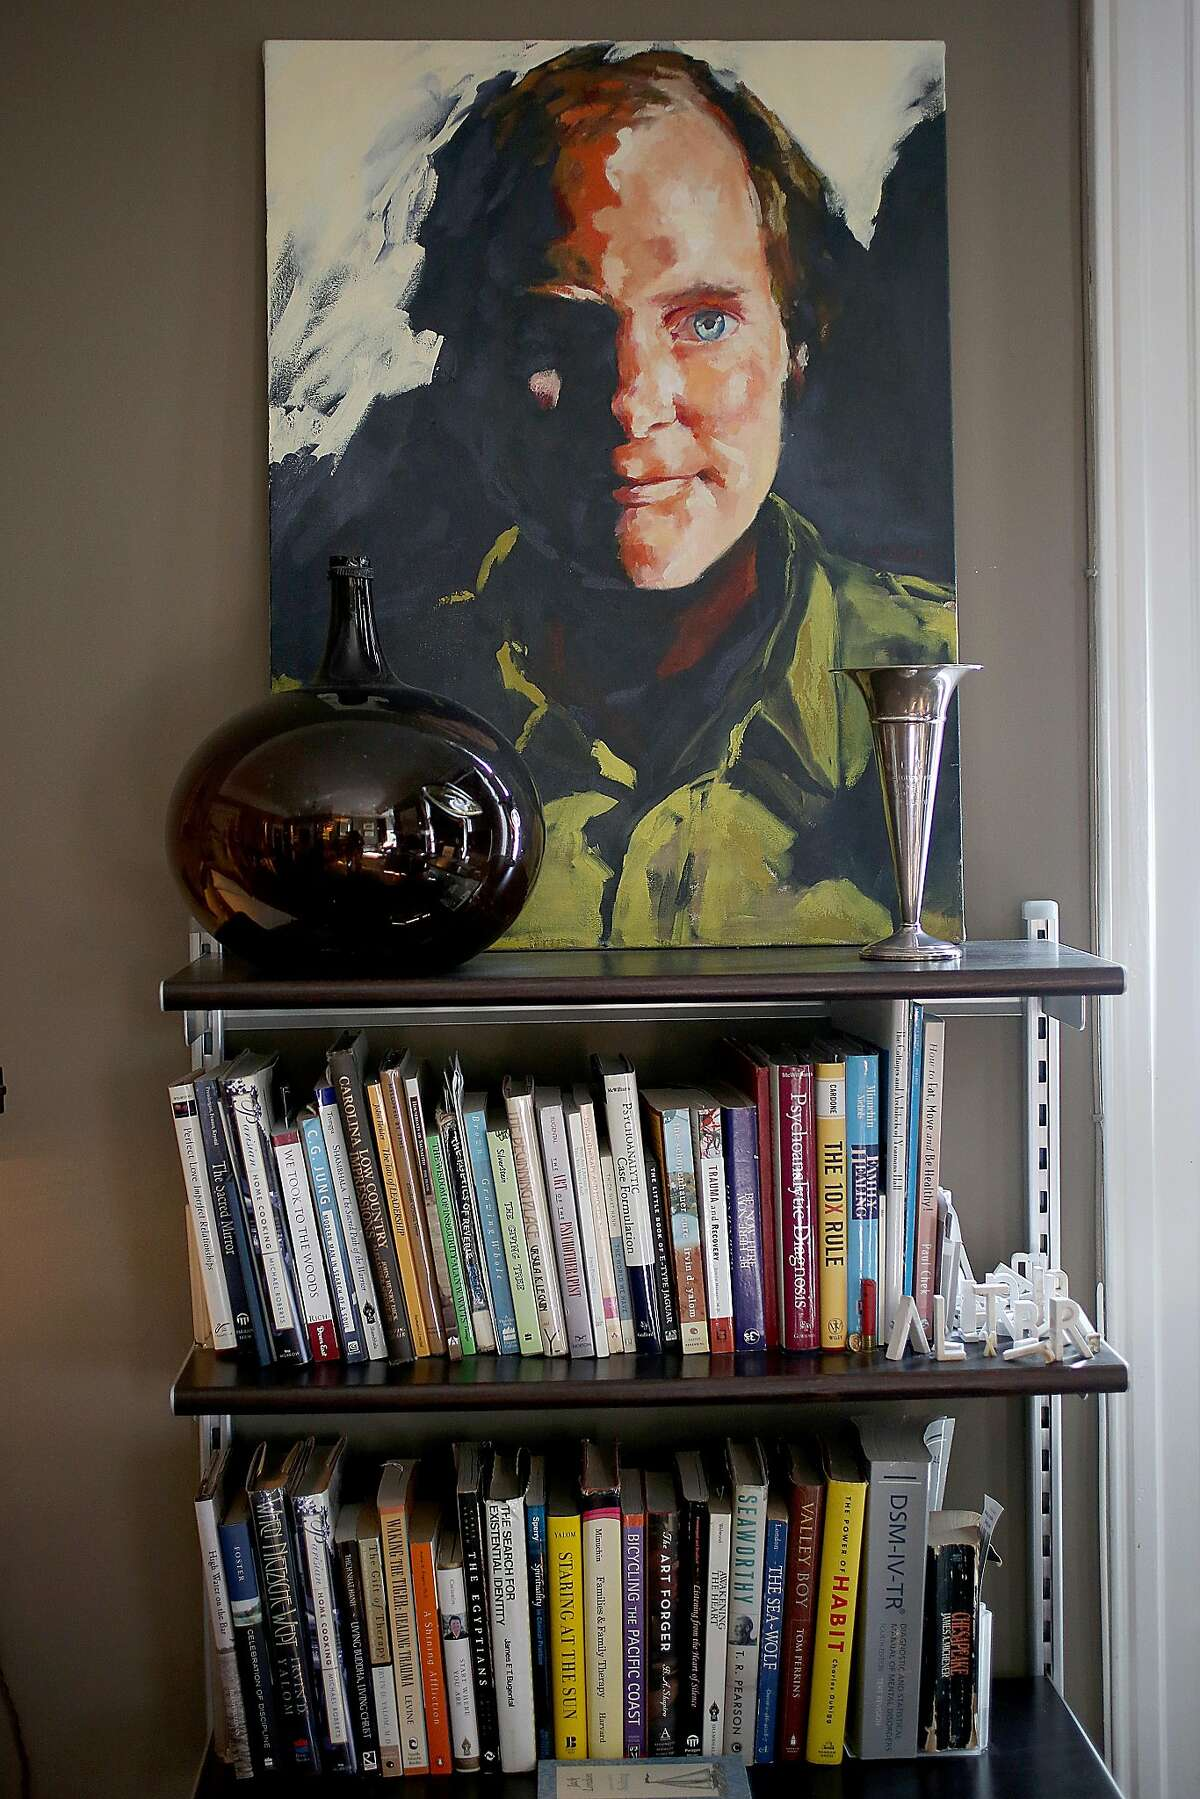 Maria Costa did a portrait (top) of lighting designer Robert Long which hangs above his bookcase at home on Monday, February 27, 2017, in Oakland, Calif.